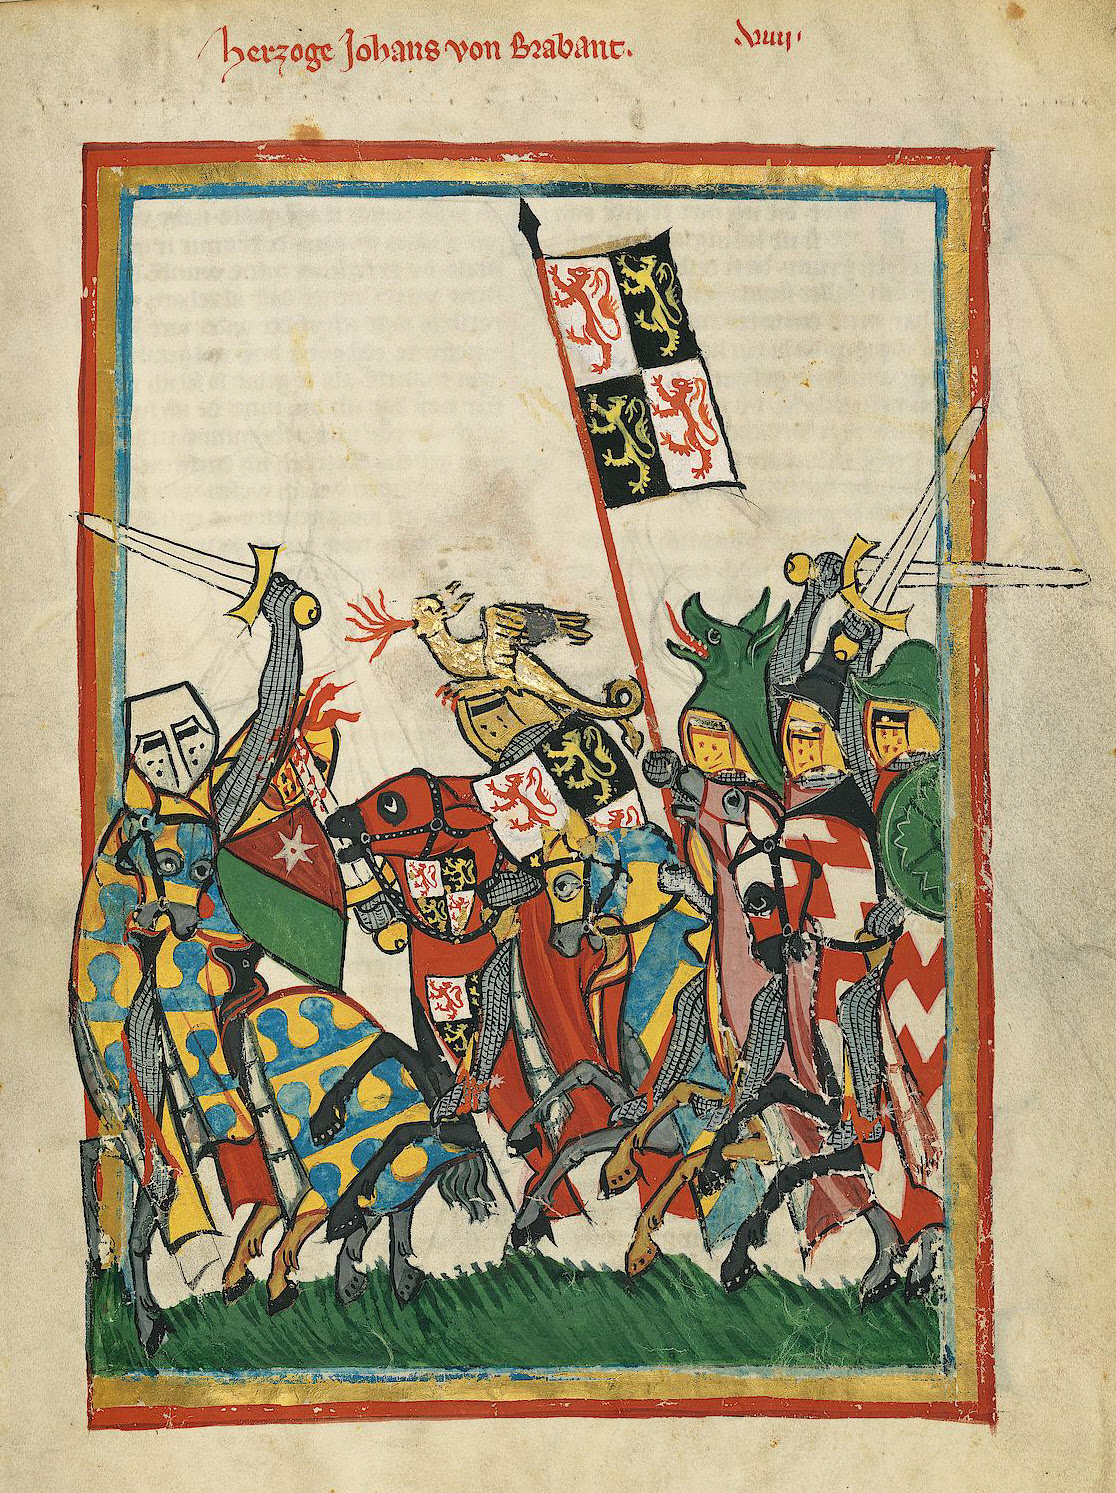 http://upload.wikimedia.org/wikipedia/commons/4/44/Codex_Manesse_Johann_von_Brabant.jpg